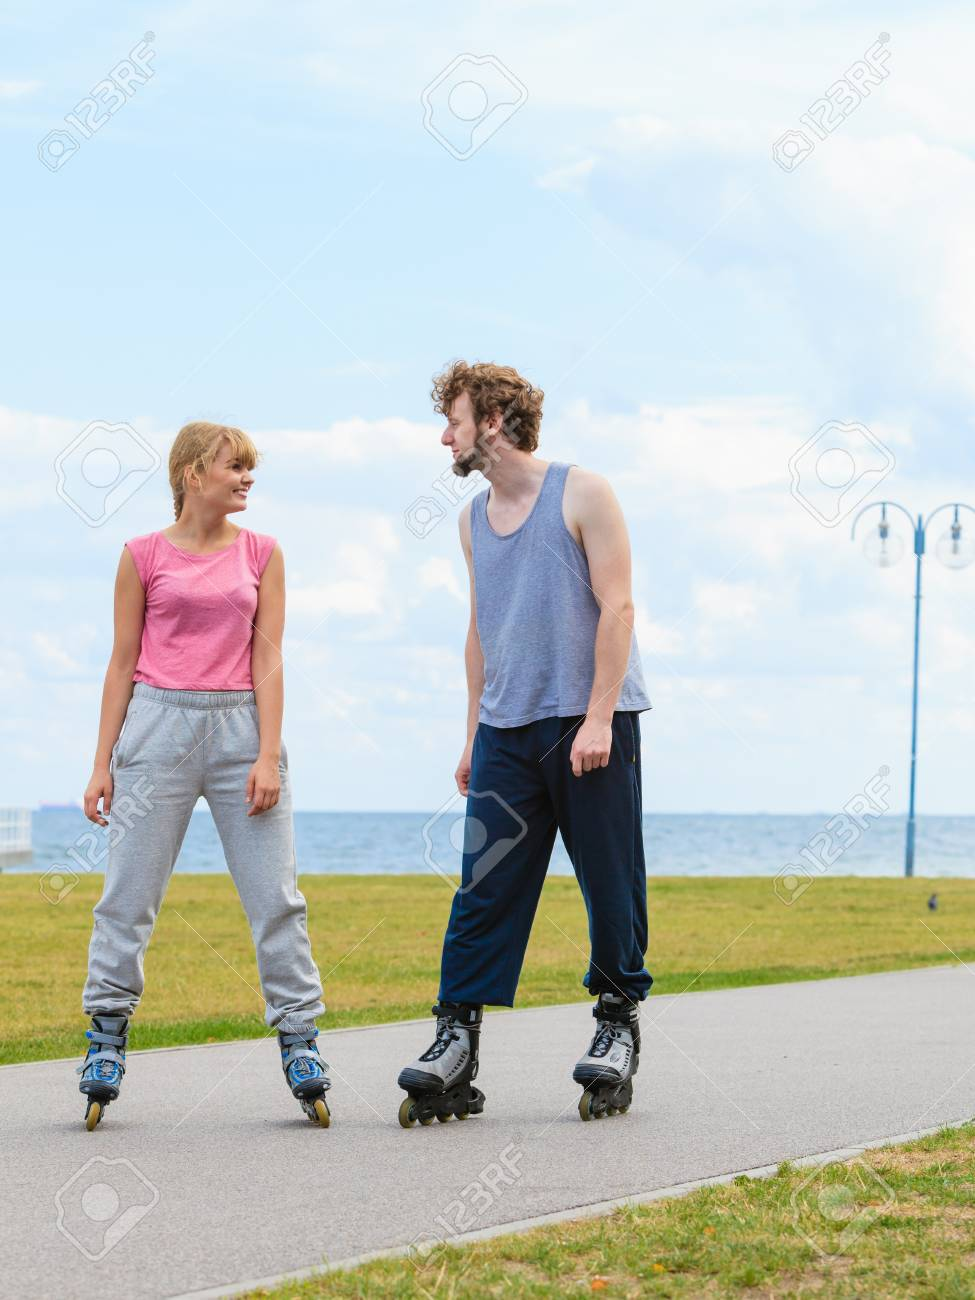 Active holidays, exercises, relationship concept. Woman and man wearing rollerskates standing and looking at each other - 81187328